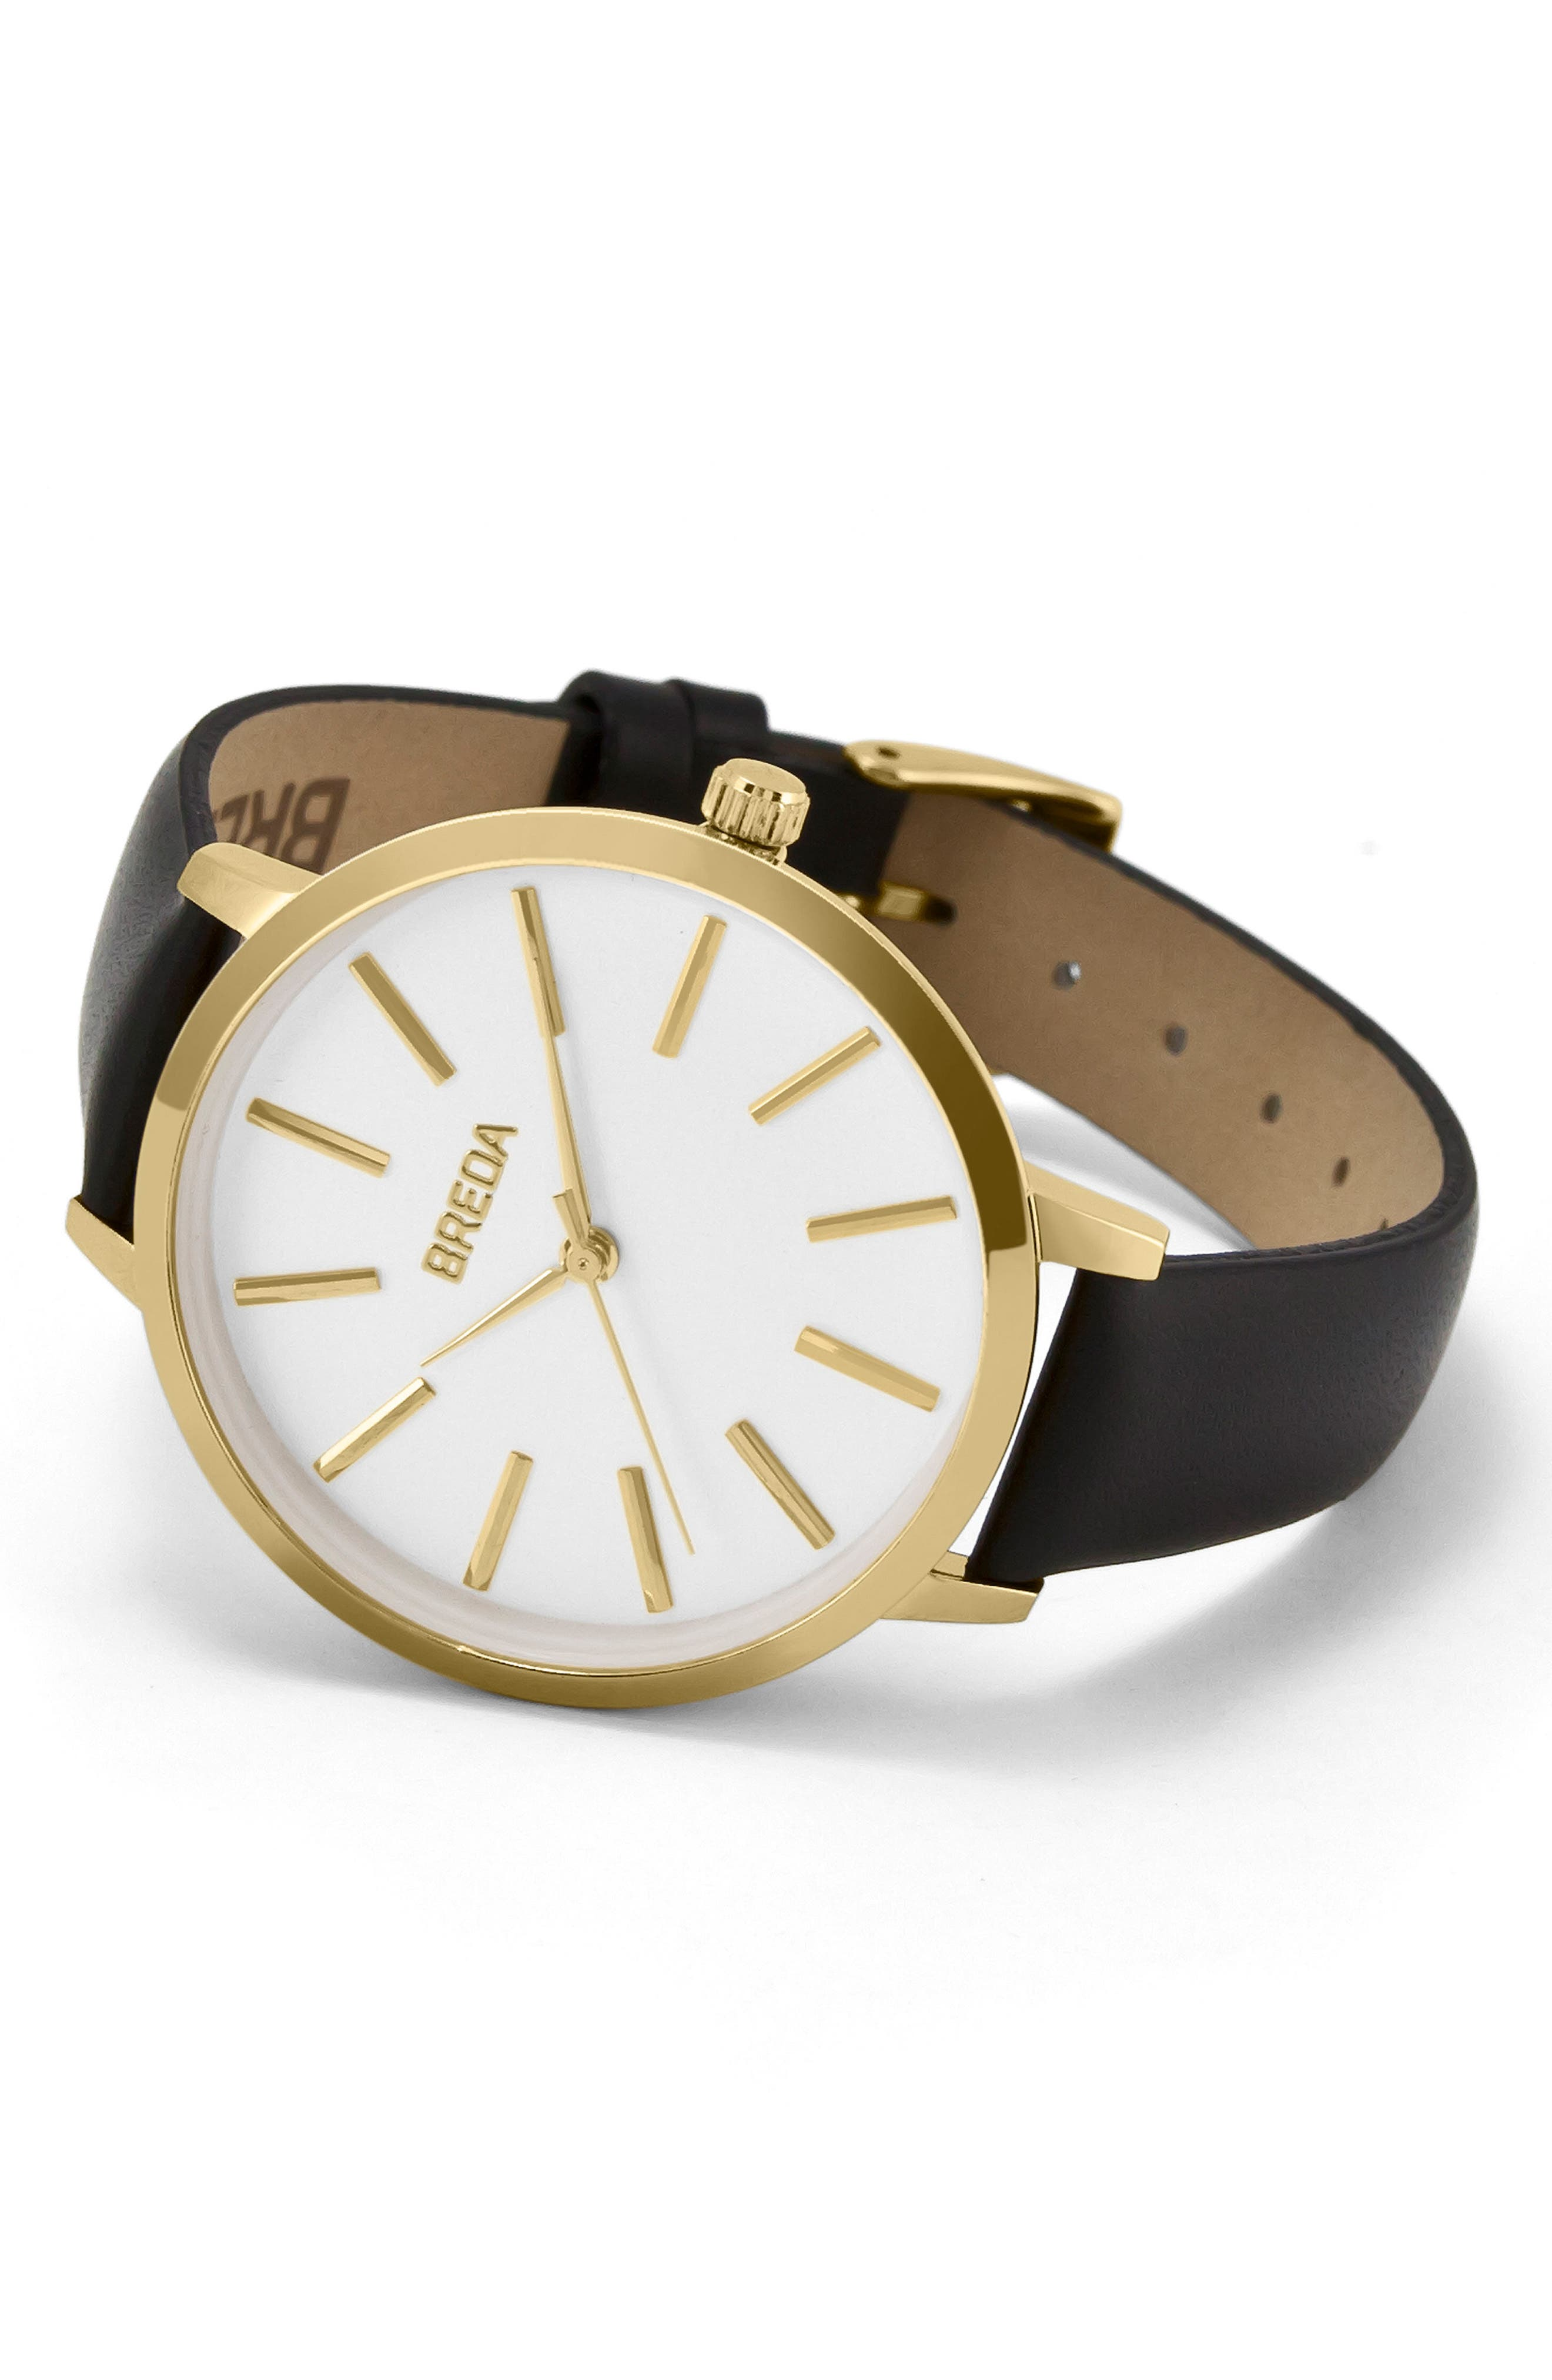 Joule Round Leather Strap Watch, 37mm,                             Alternate thumbnail 2, color,                             001